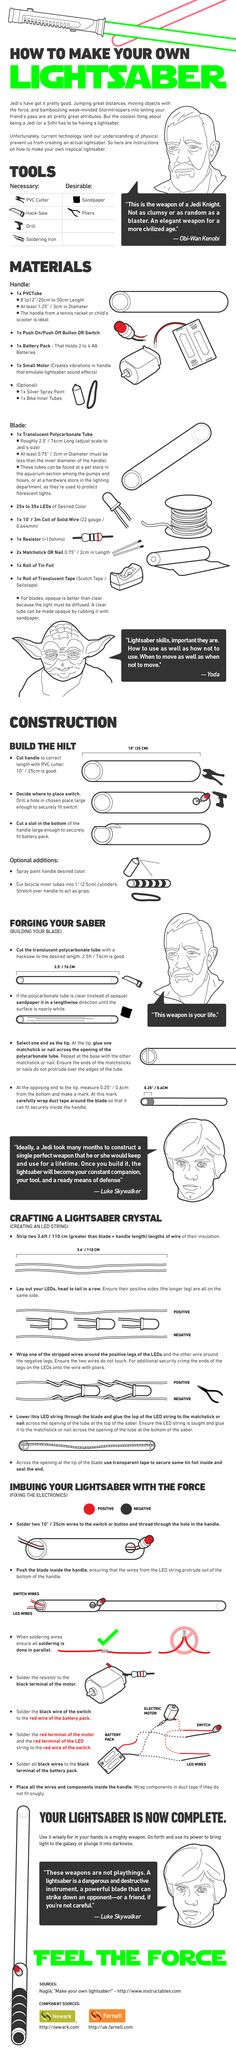 Instructions on a DIY lightsaber. I need to do this one day.